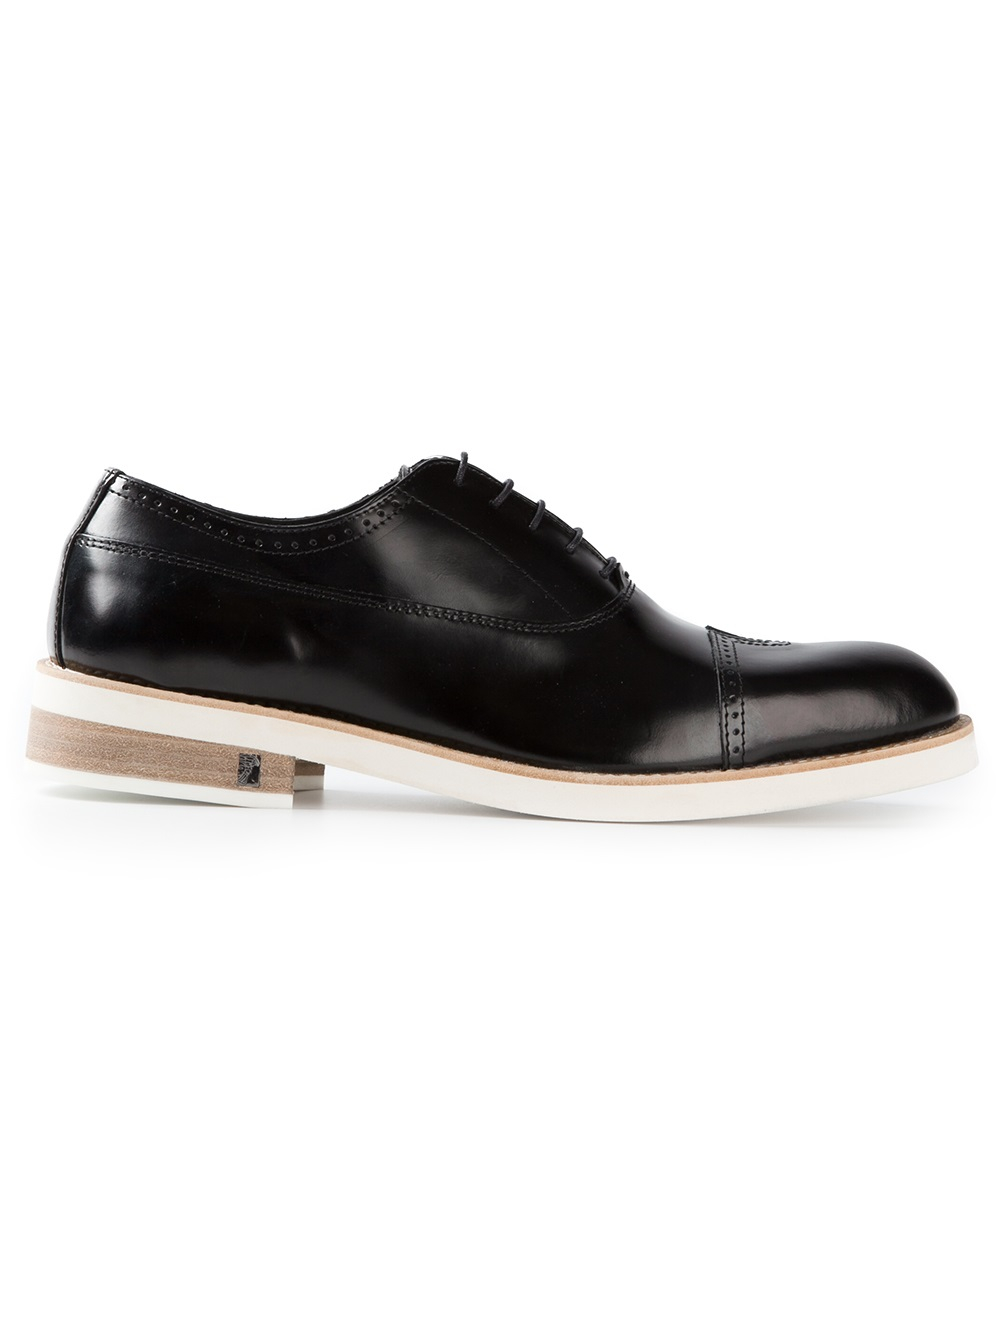 Versace Shoes For Men 2014 Versace Oxford Shoes i...